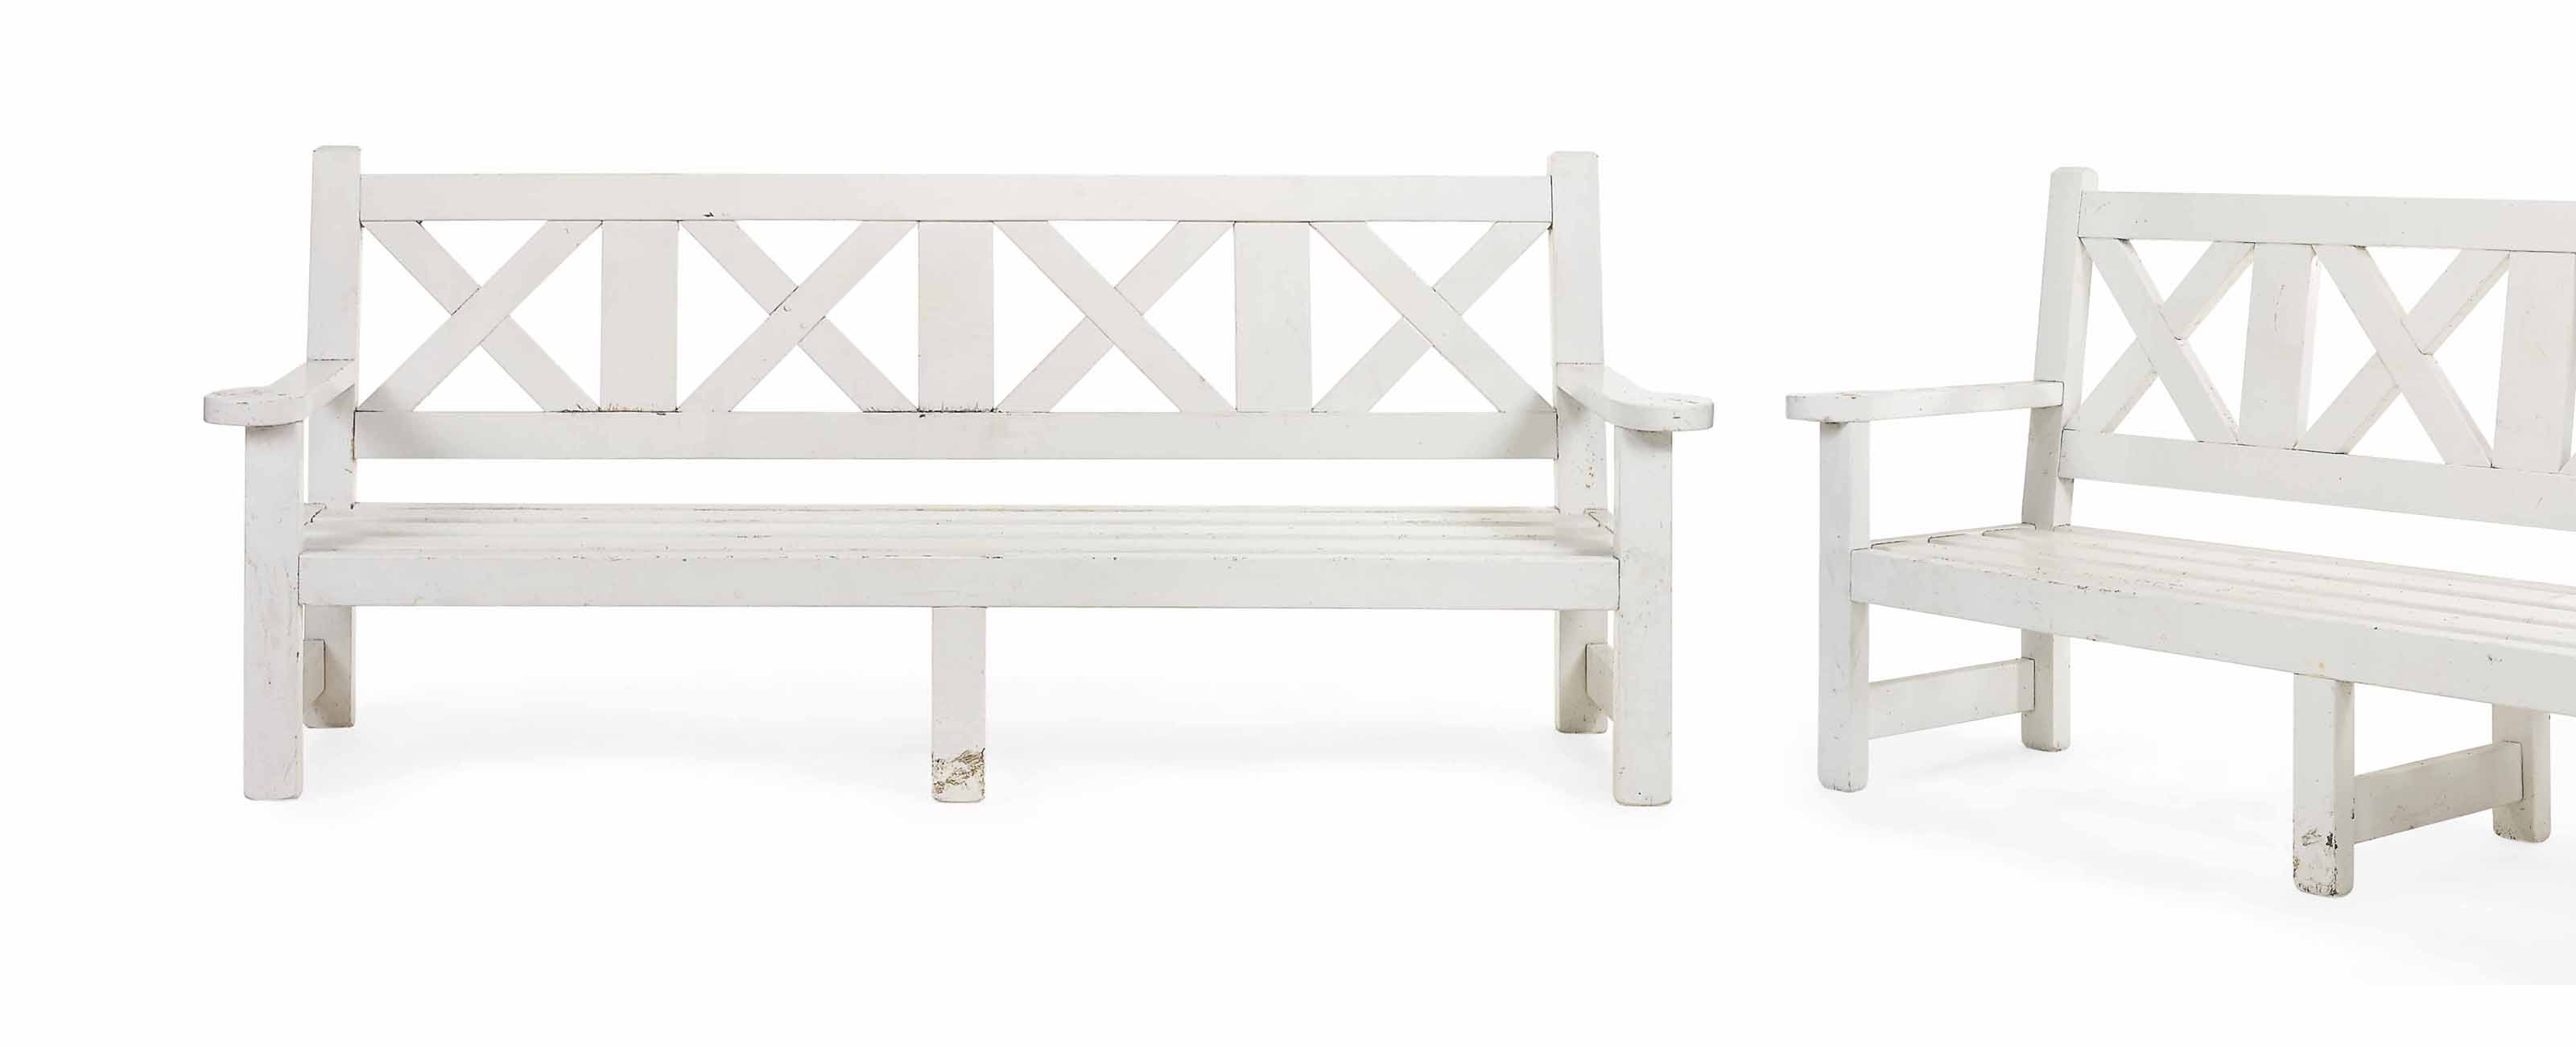 A PAIR OF WHITE-PAINTED LARGE GARDEN BENCHES